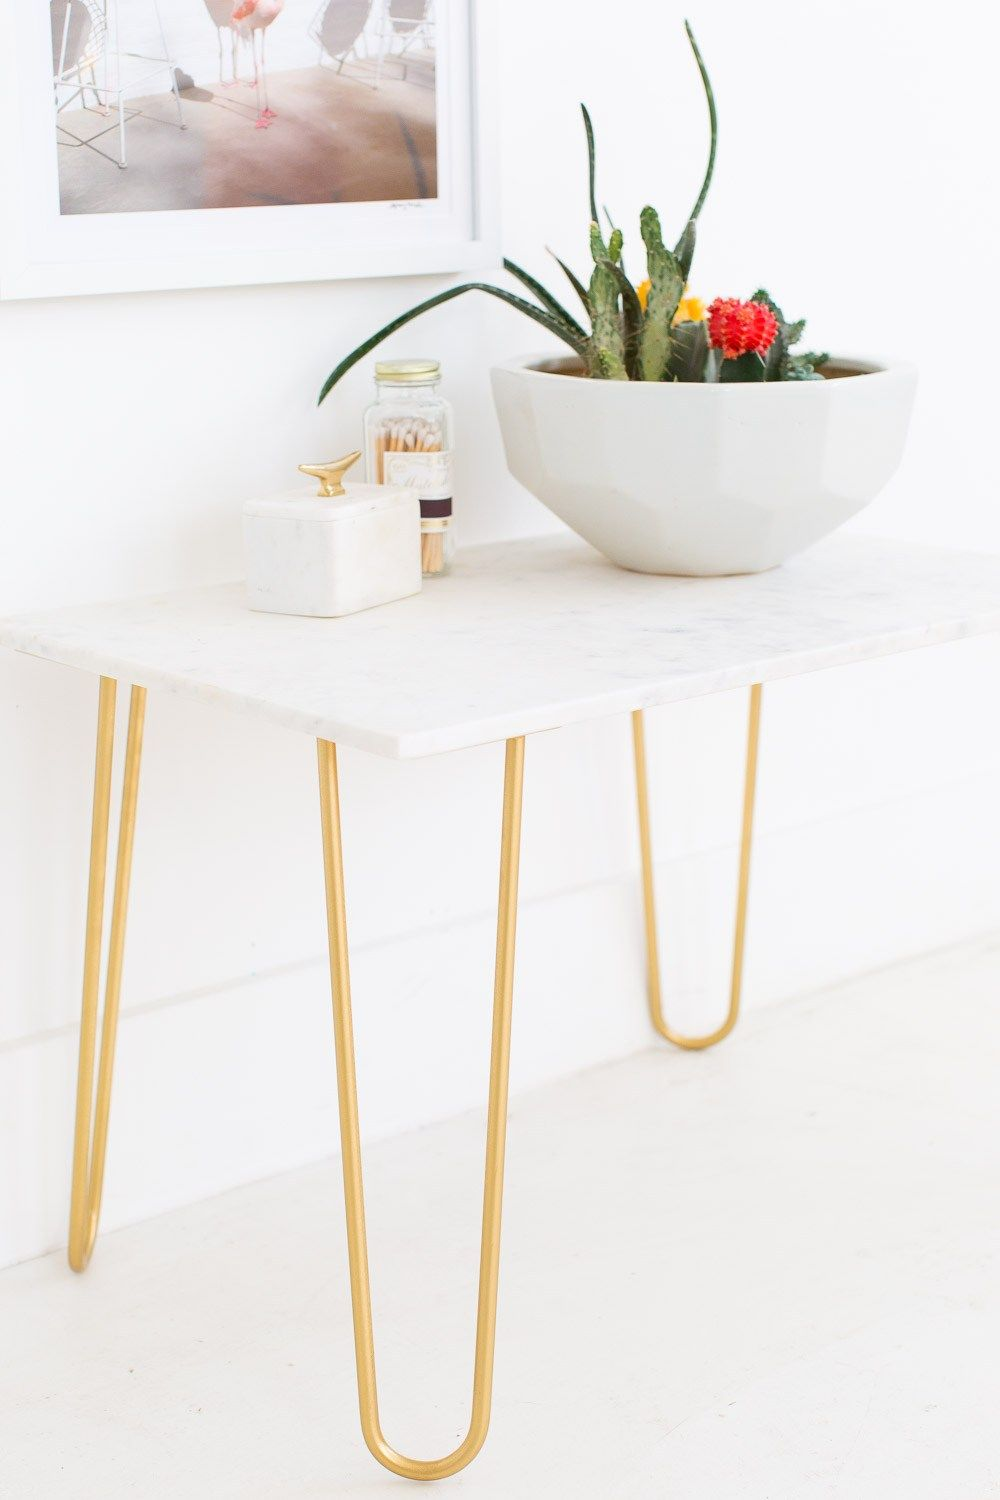 diy marble and gold accent table marbles sugaring ideas side sugar cloth home decor wicker outdoor furniture beach themed lamps floor separator pottery barn like tables reclaimed